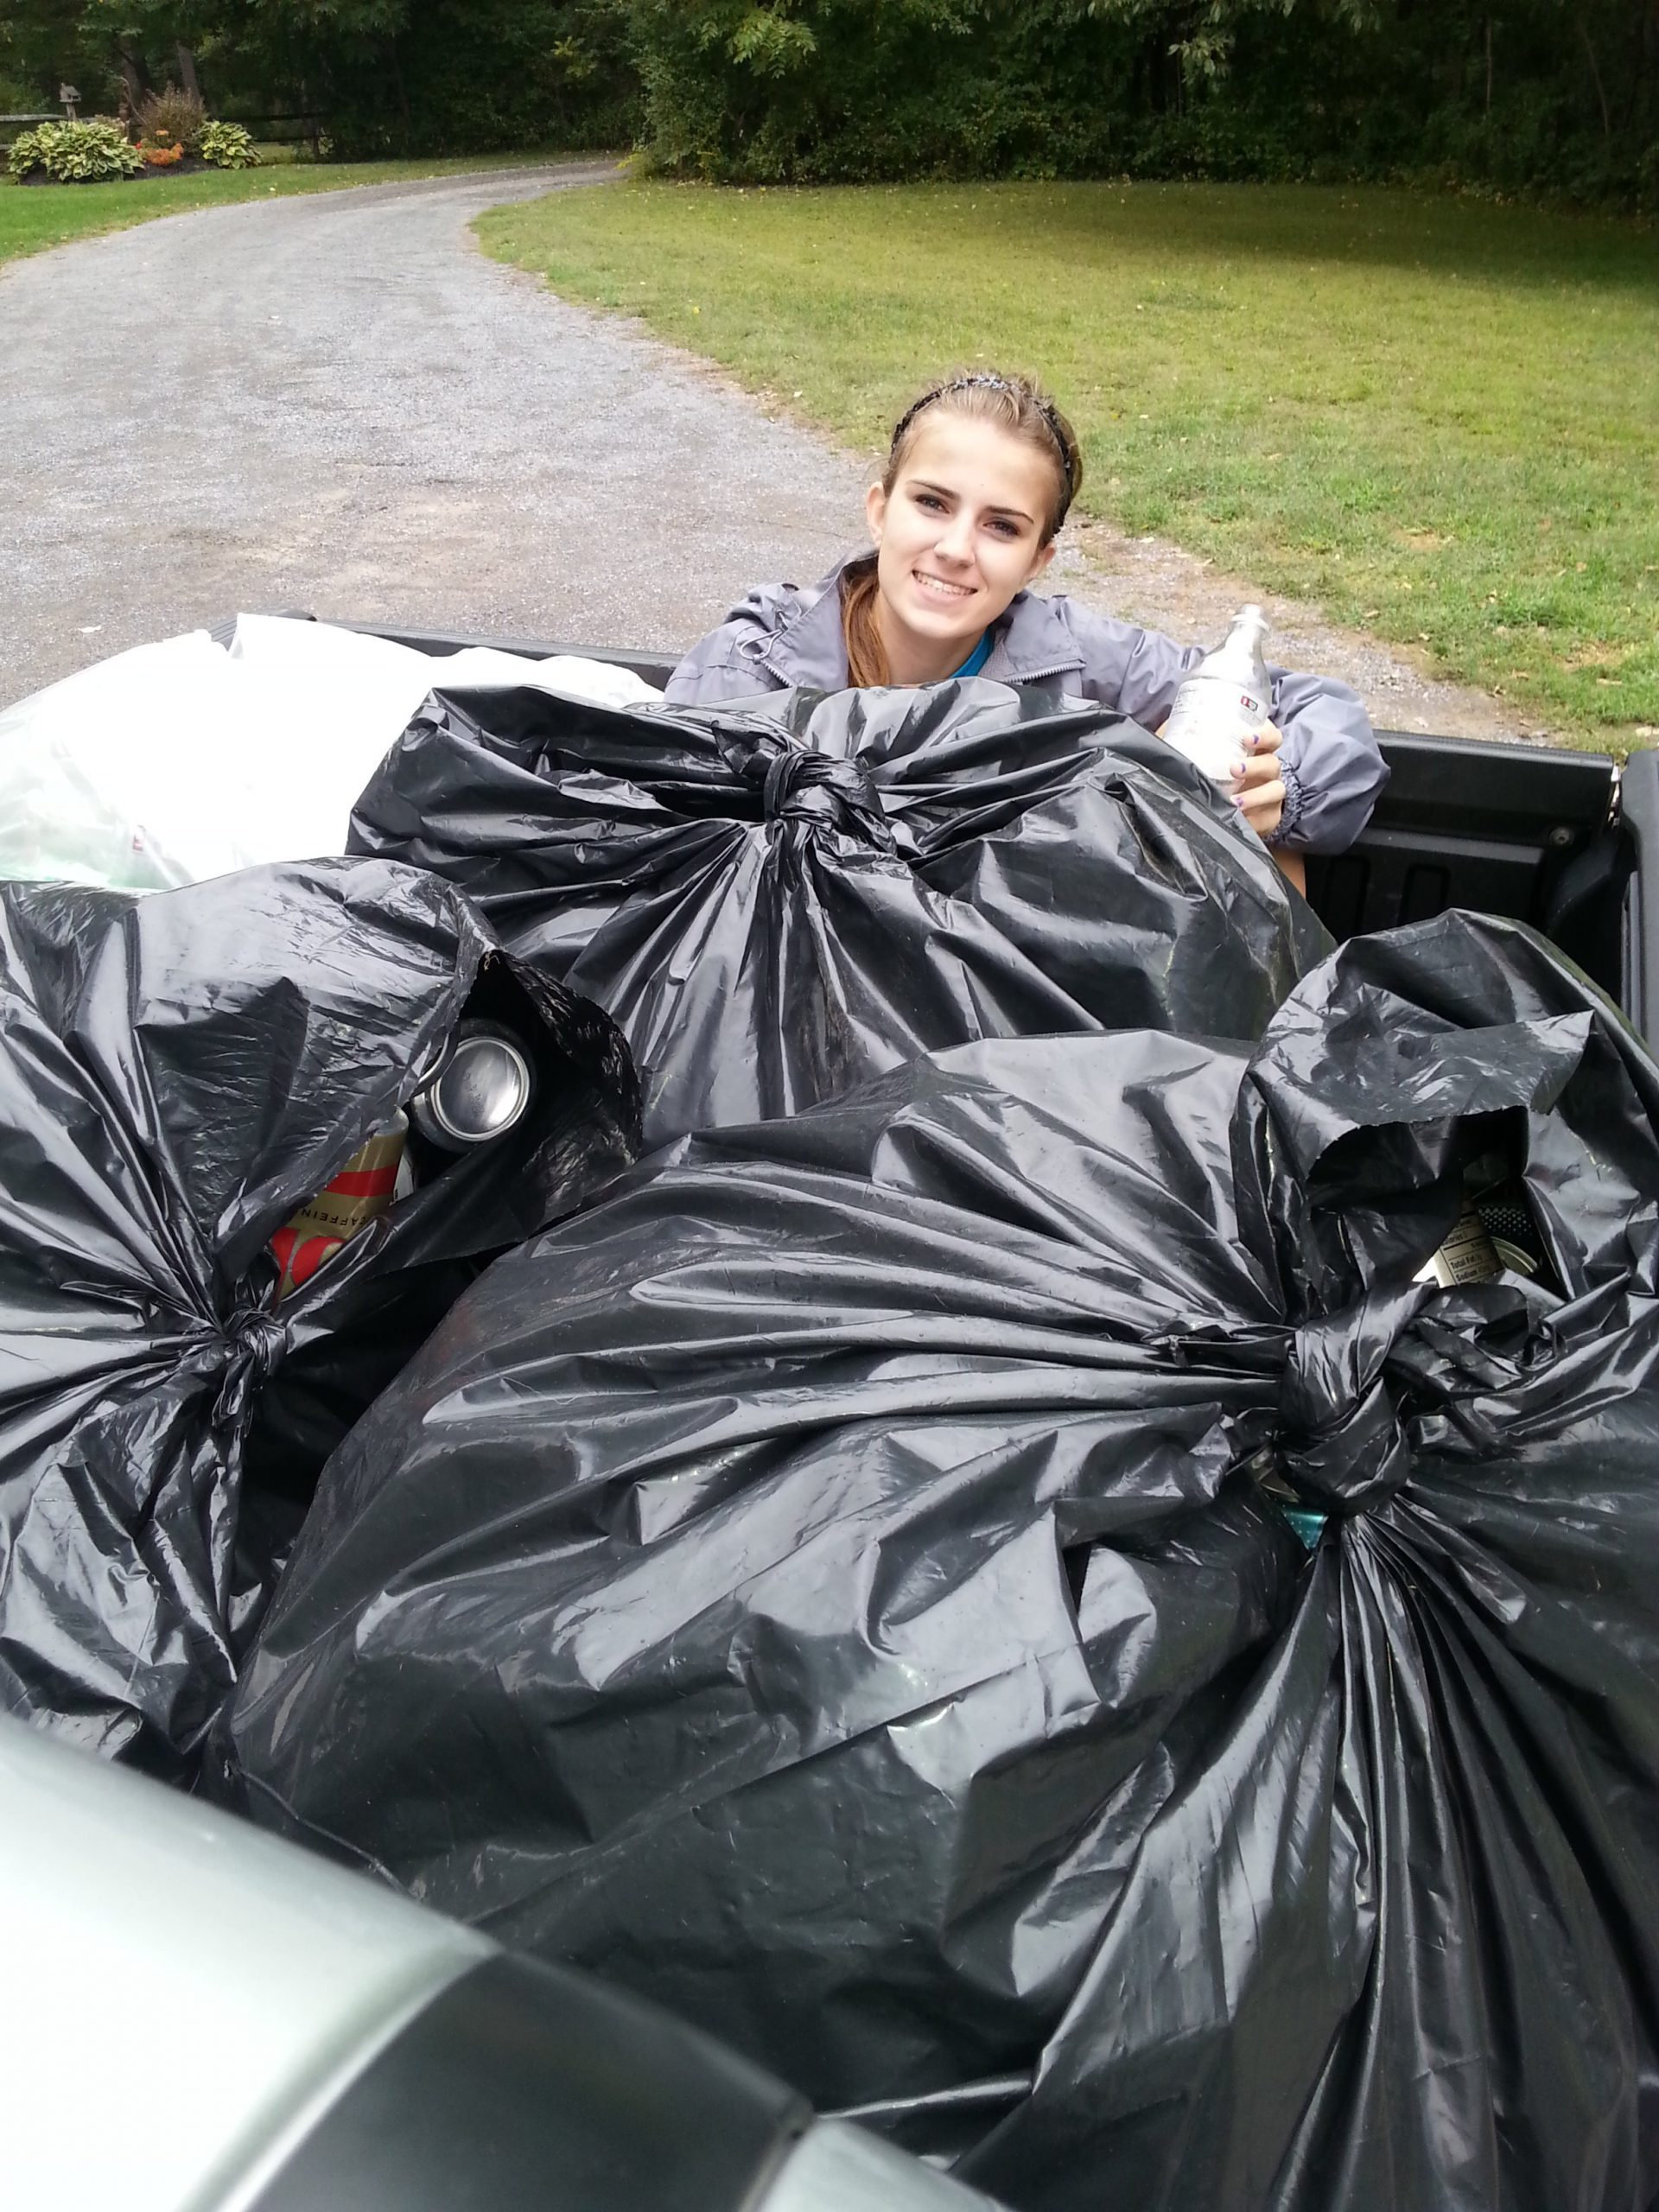 Knowledge is Power: One Student's Mission to Make a Difference collecting bottles